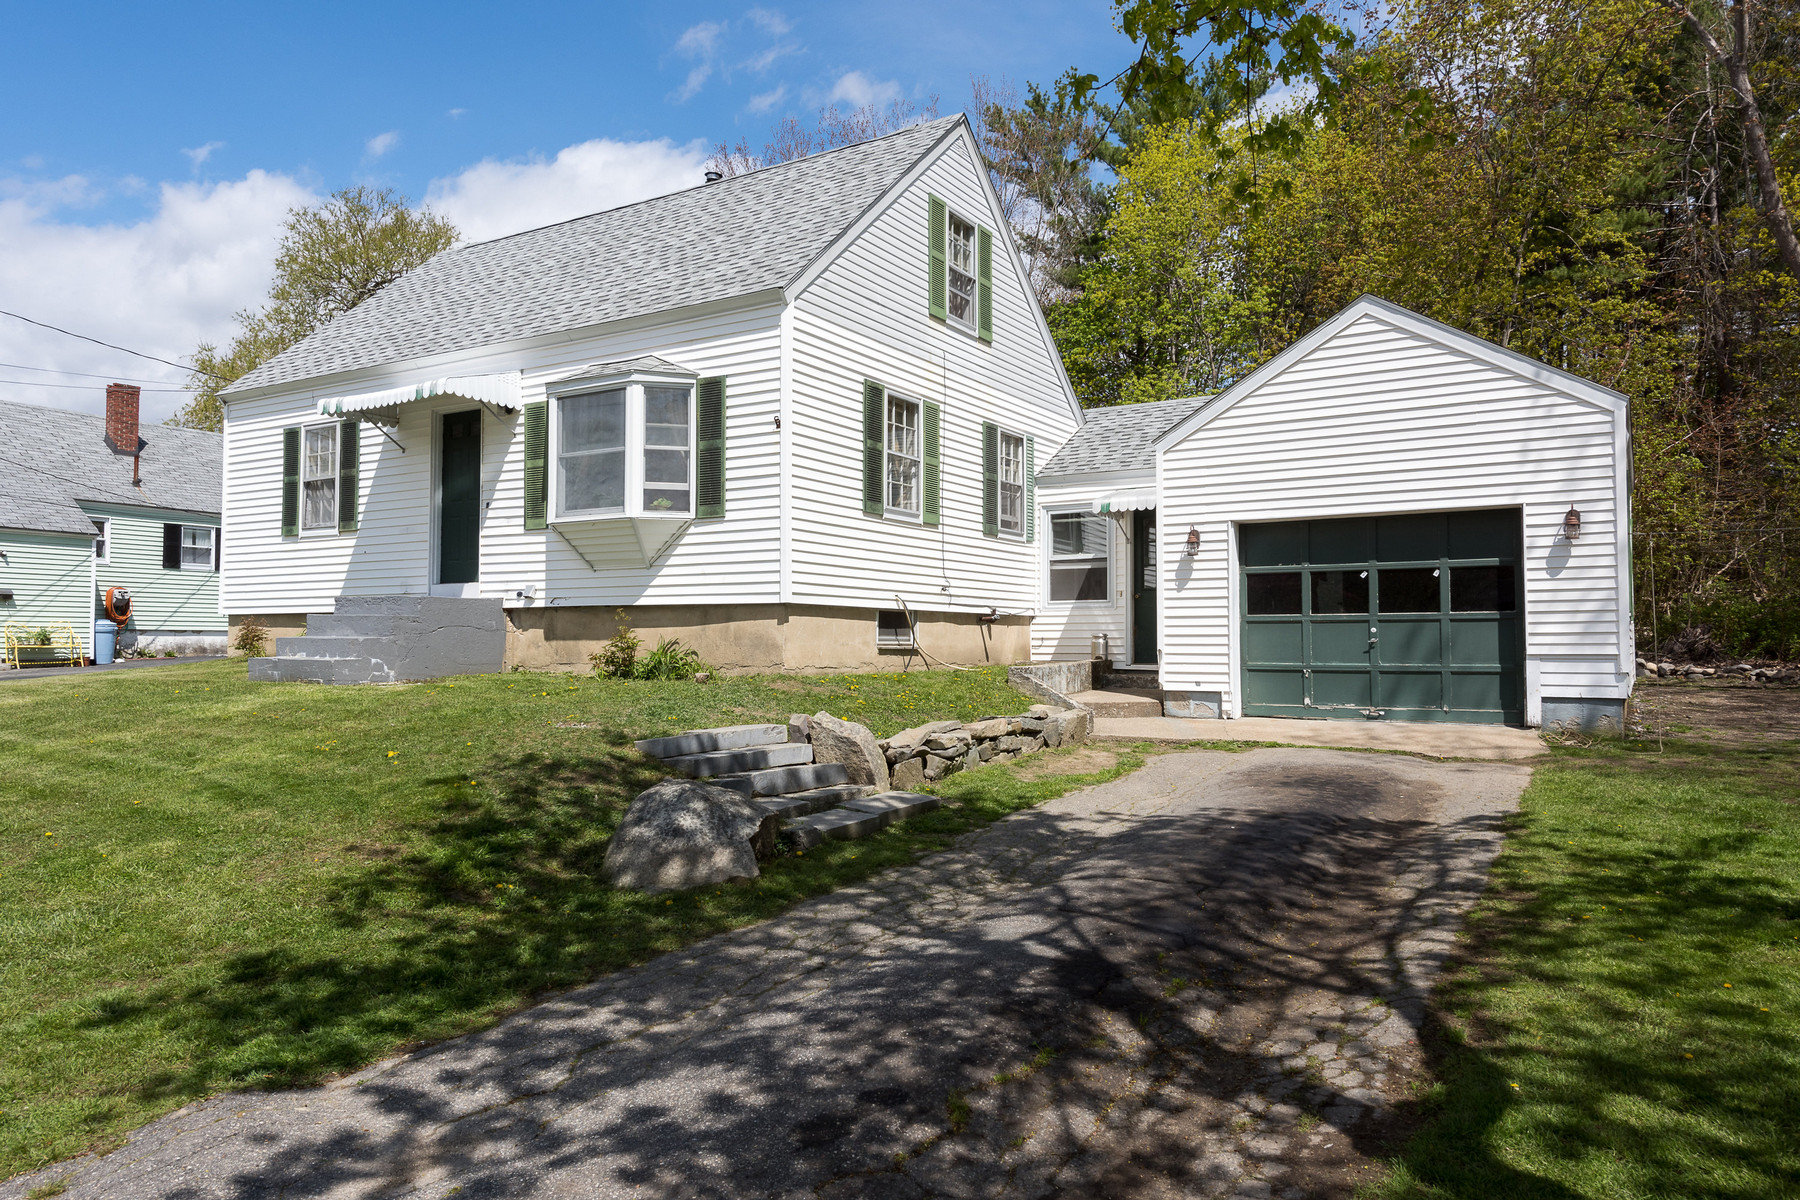 Single Family Home for Sale at South Eliot Cape 131 Leach Road Eliot, Maine 03903 United States